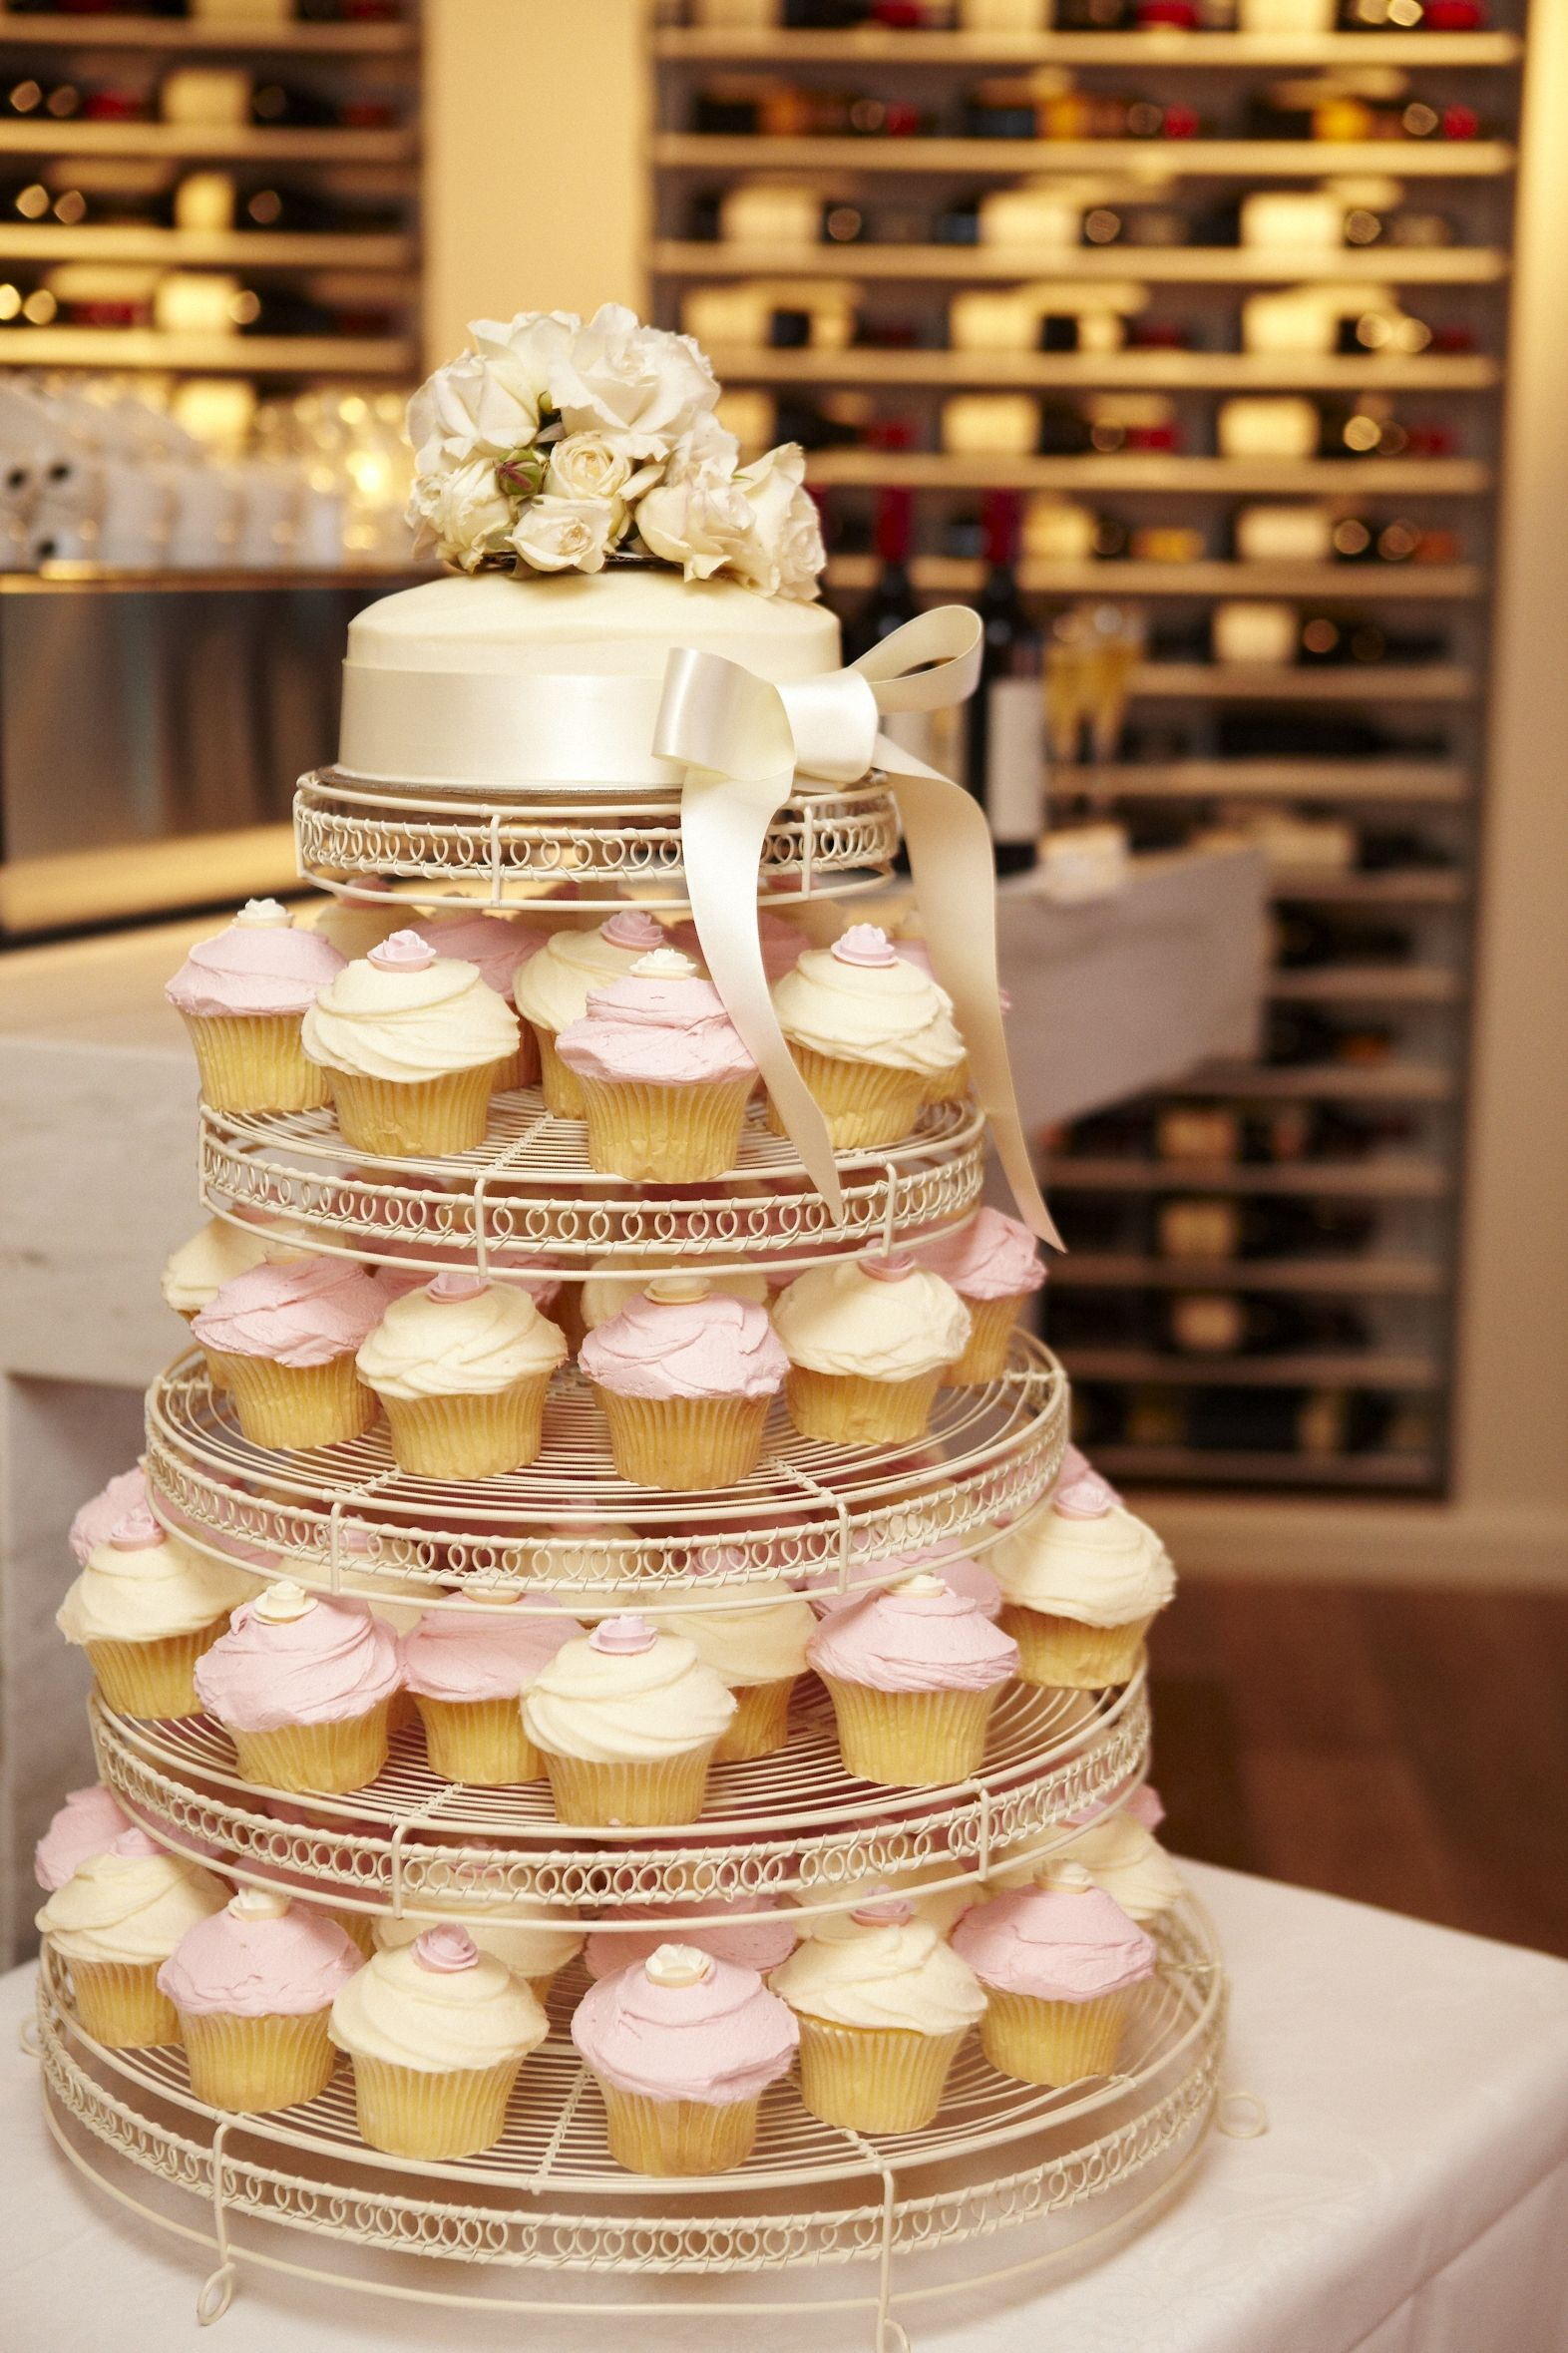 cupcake wedding cake must marry pinterest. Black Bedroom Furniture Sets. Home Design Ideas